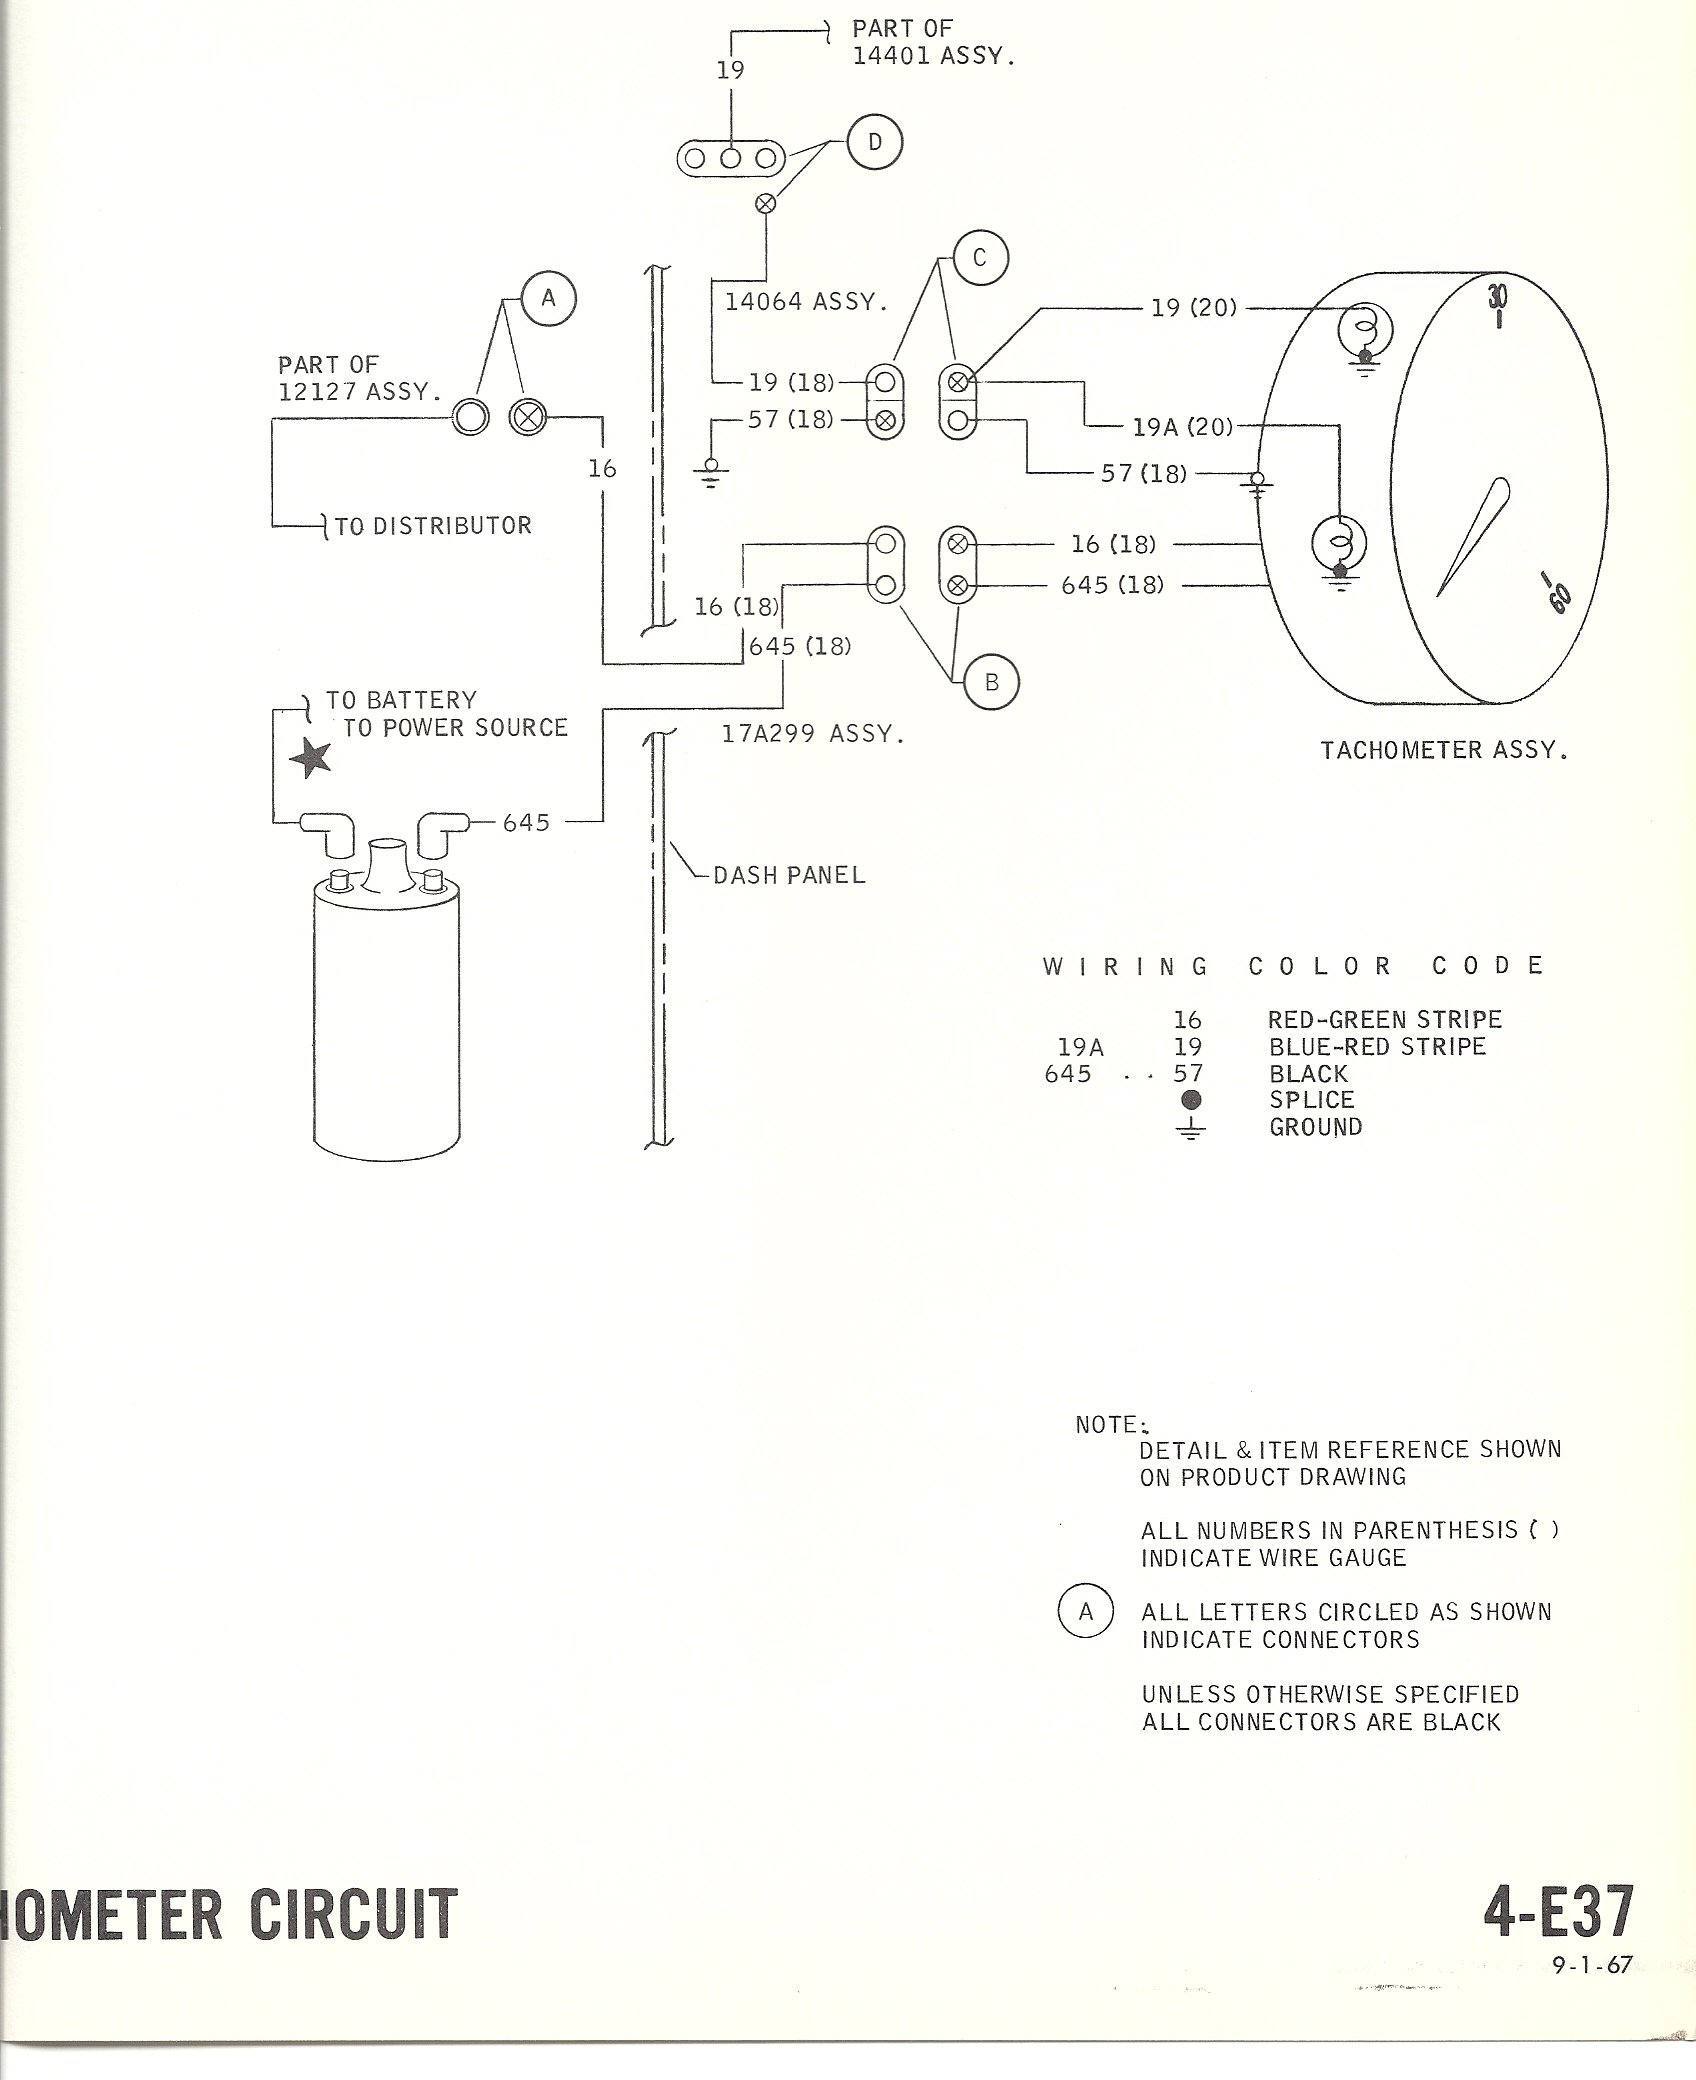 1968 mustang wiring diagrams tach please help ford mustang click image for larger version tach wiring diagram jpg views 21787 size